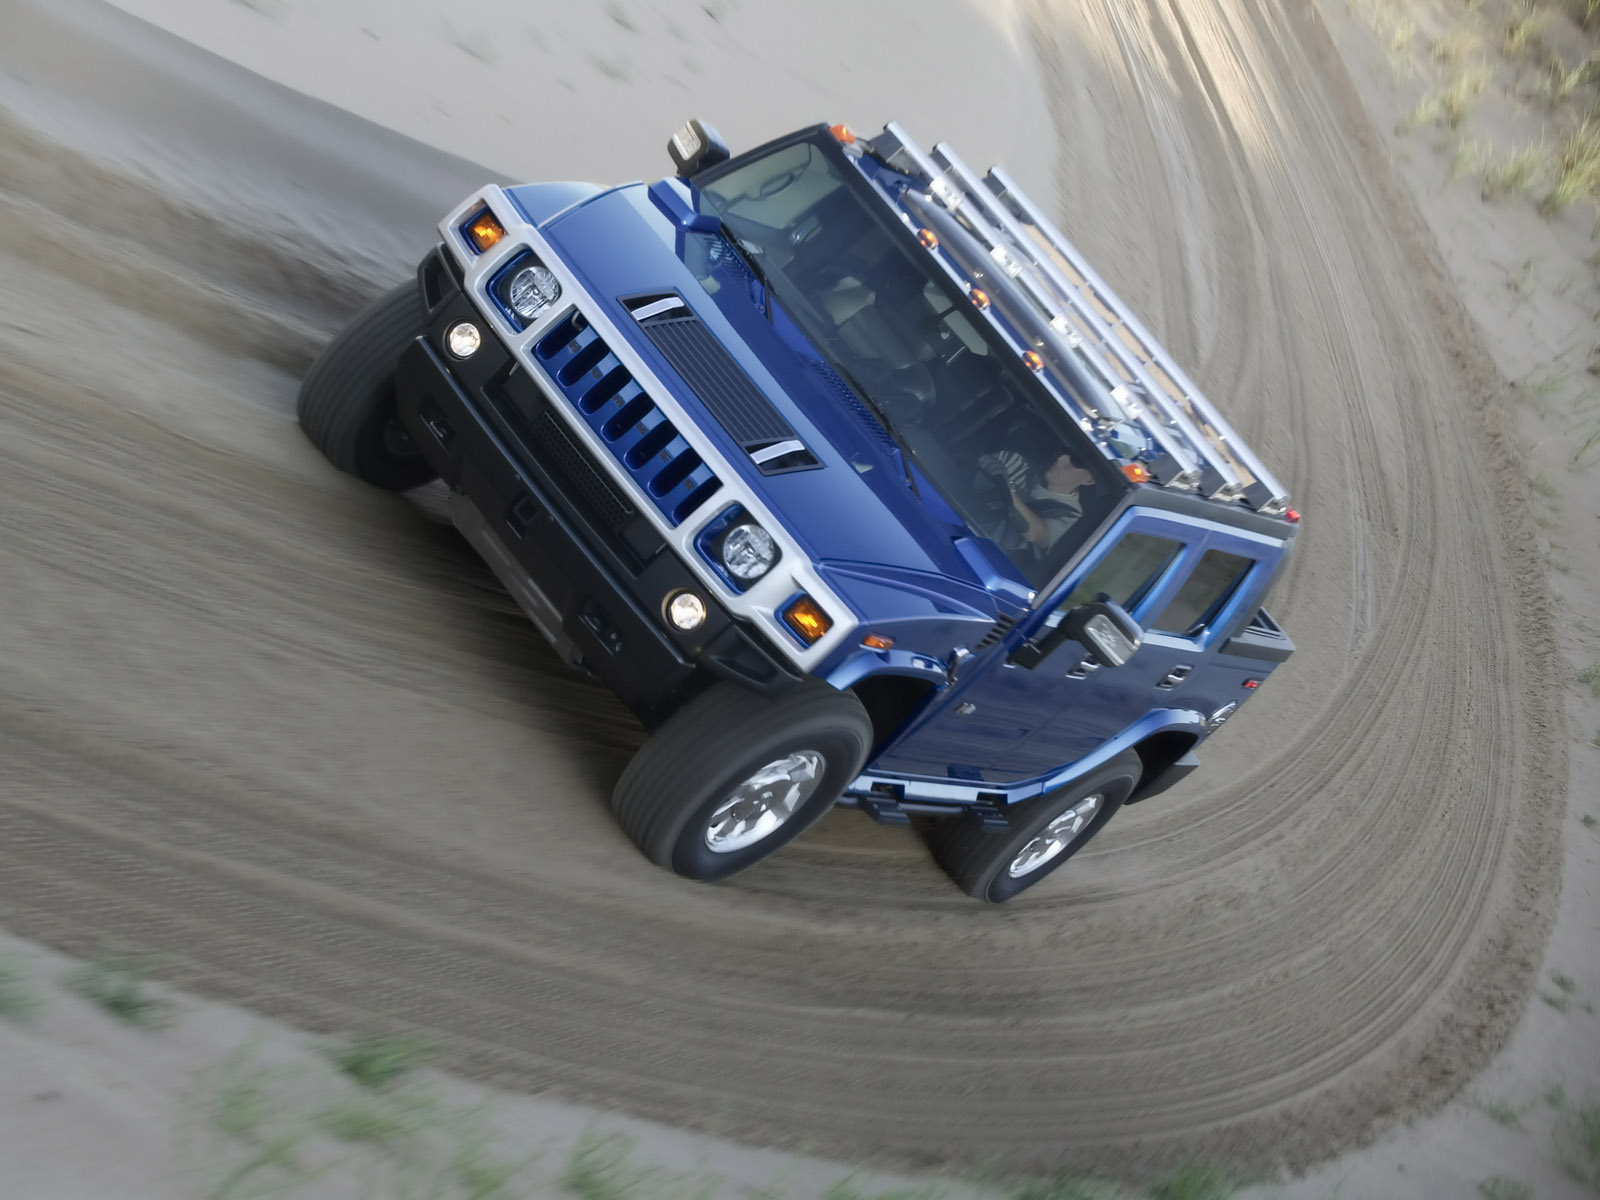 2006 Hummer H2 SUT Pacific Blue | Top Speed